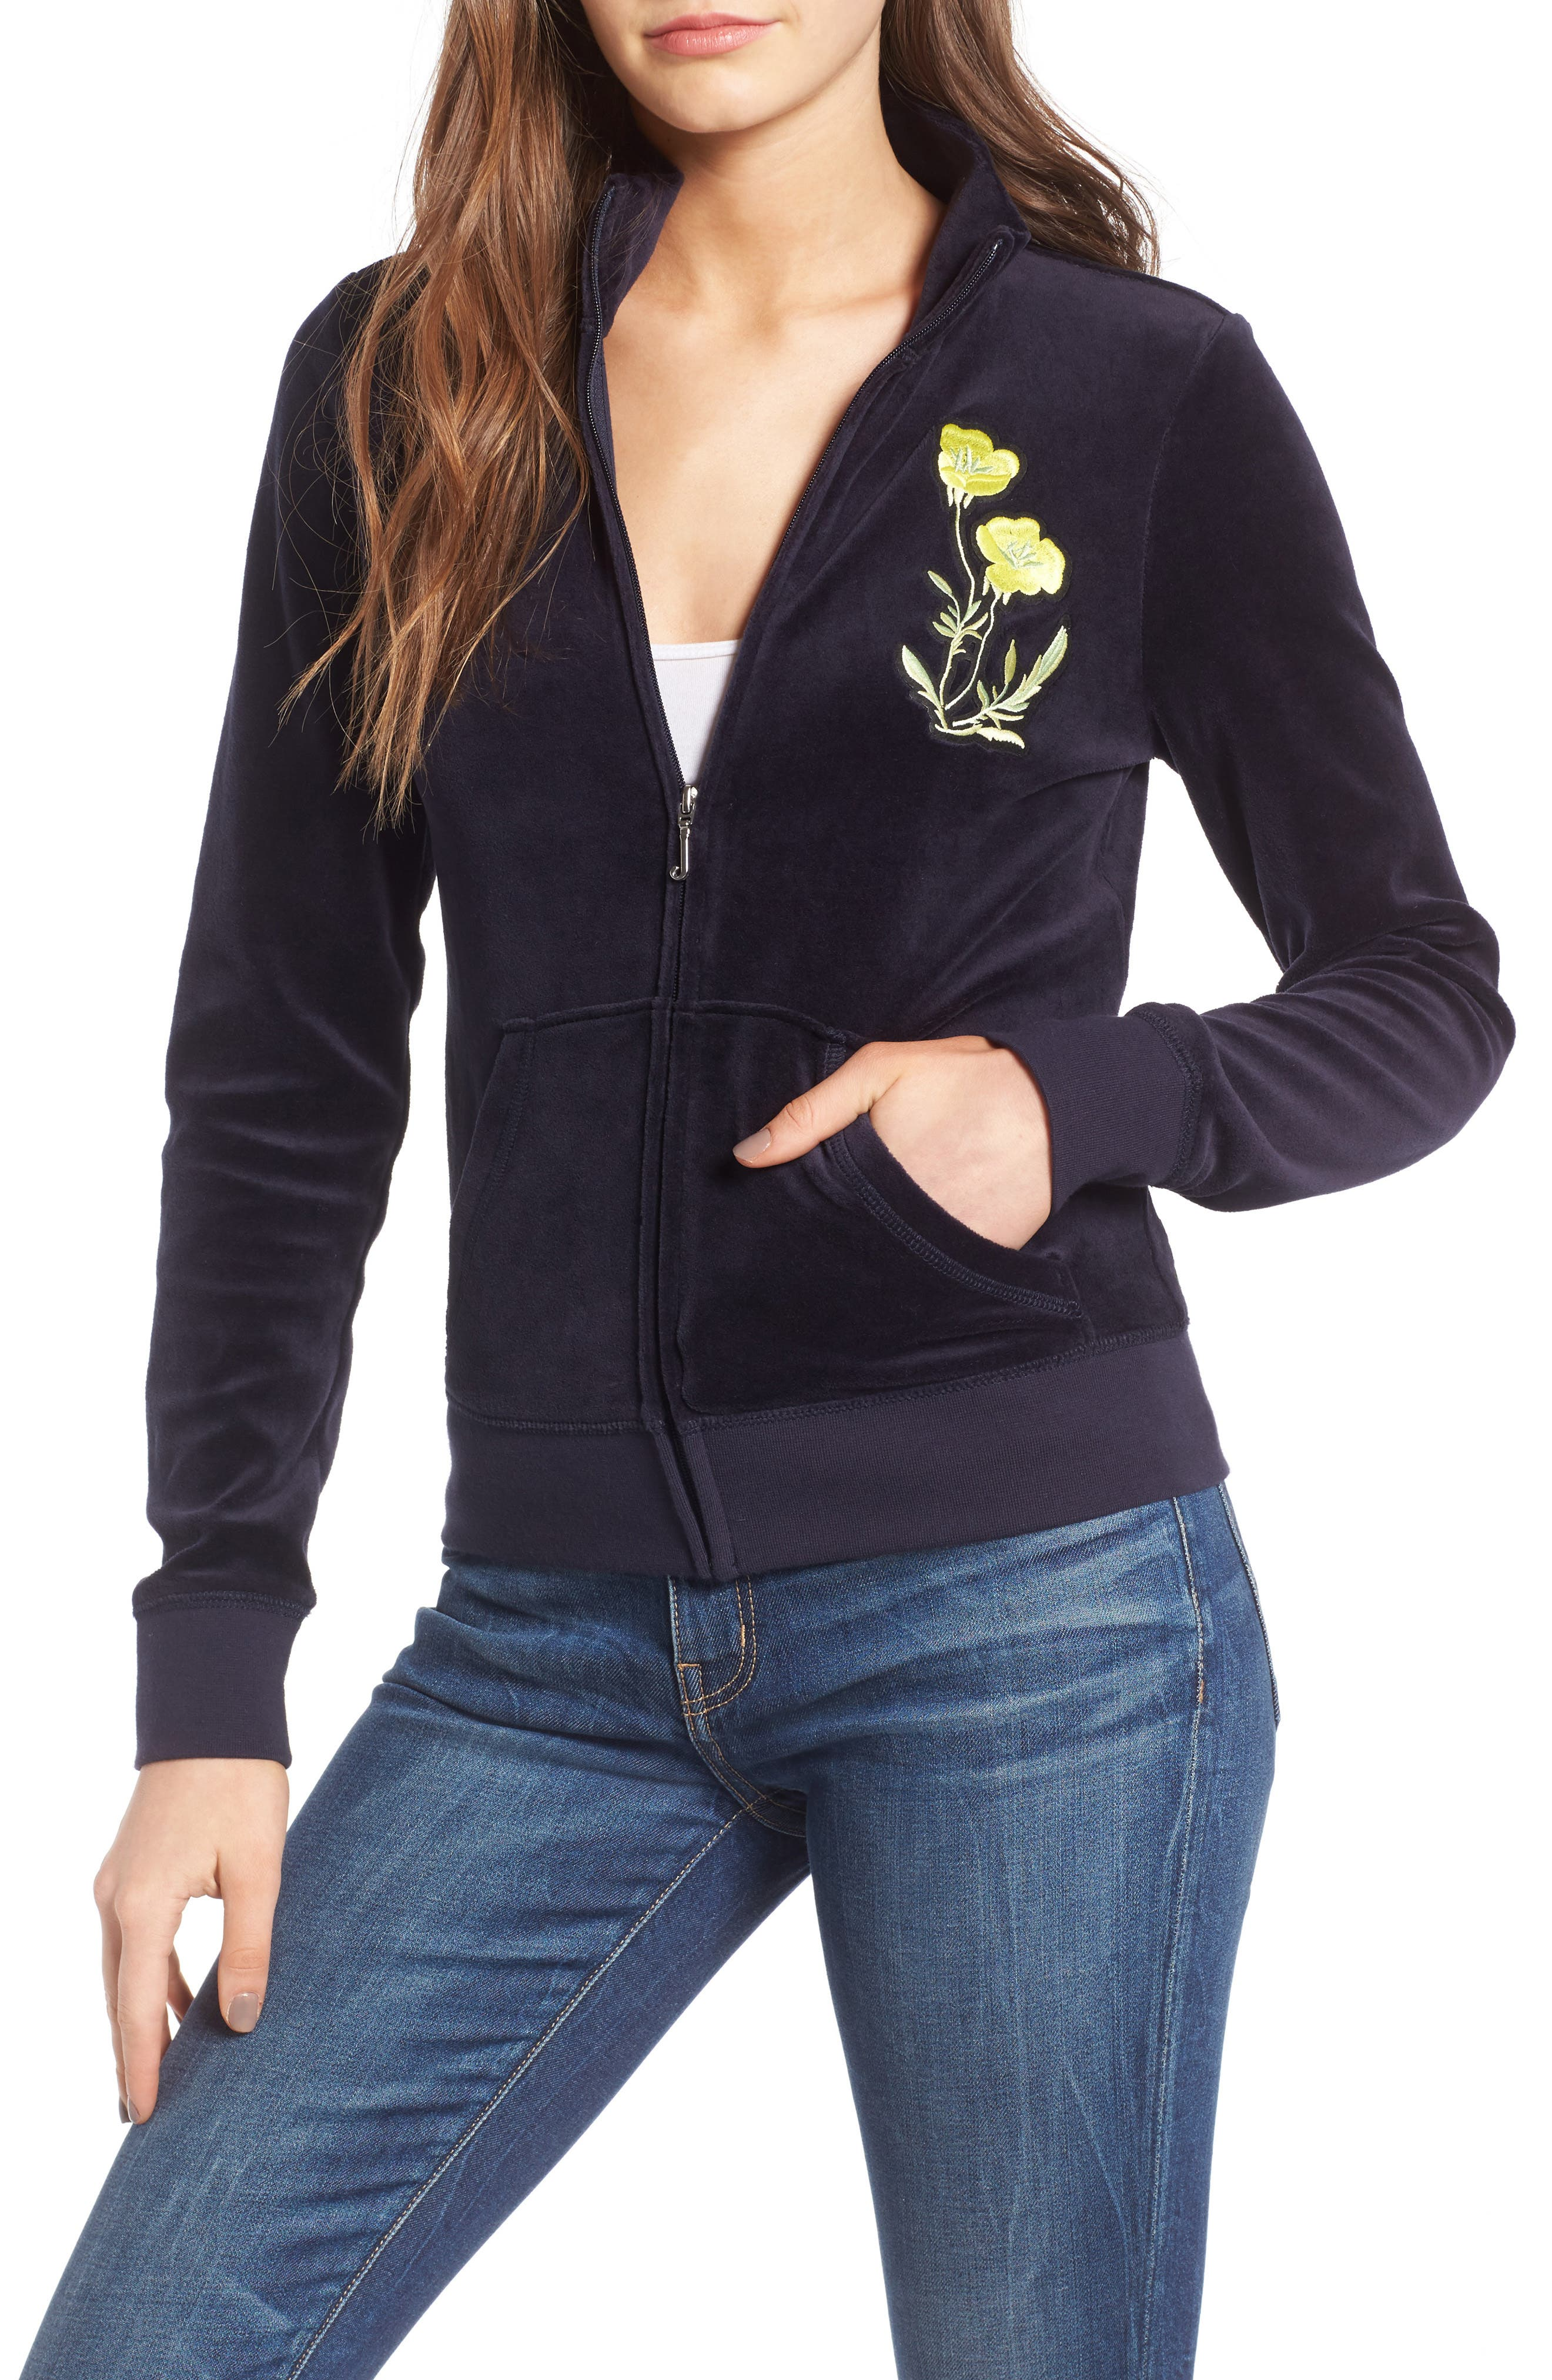 Main Image - Juicy Couture Pretty Thing Fairfax Velour Track Jacket